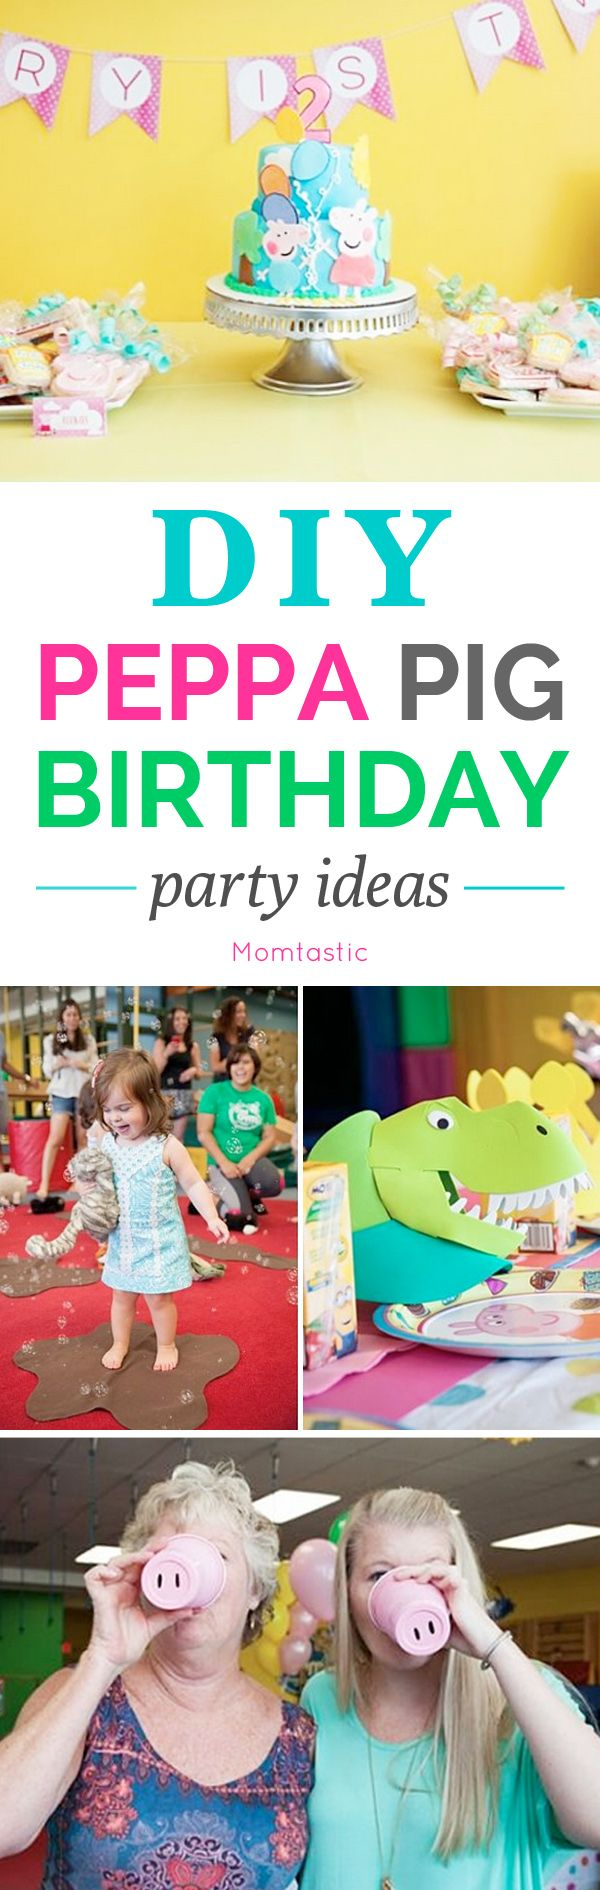 Pe peppa pig online coloring pages - Diy Peppa Pig Birthday Party Ideas